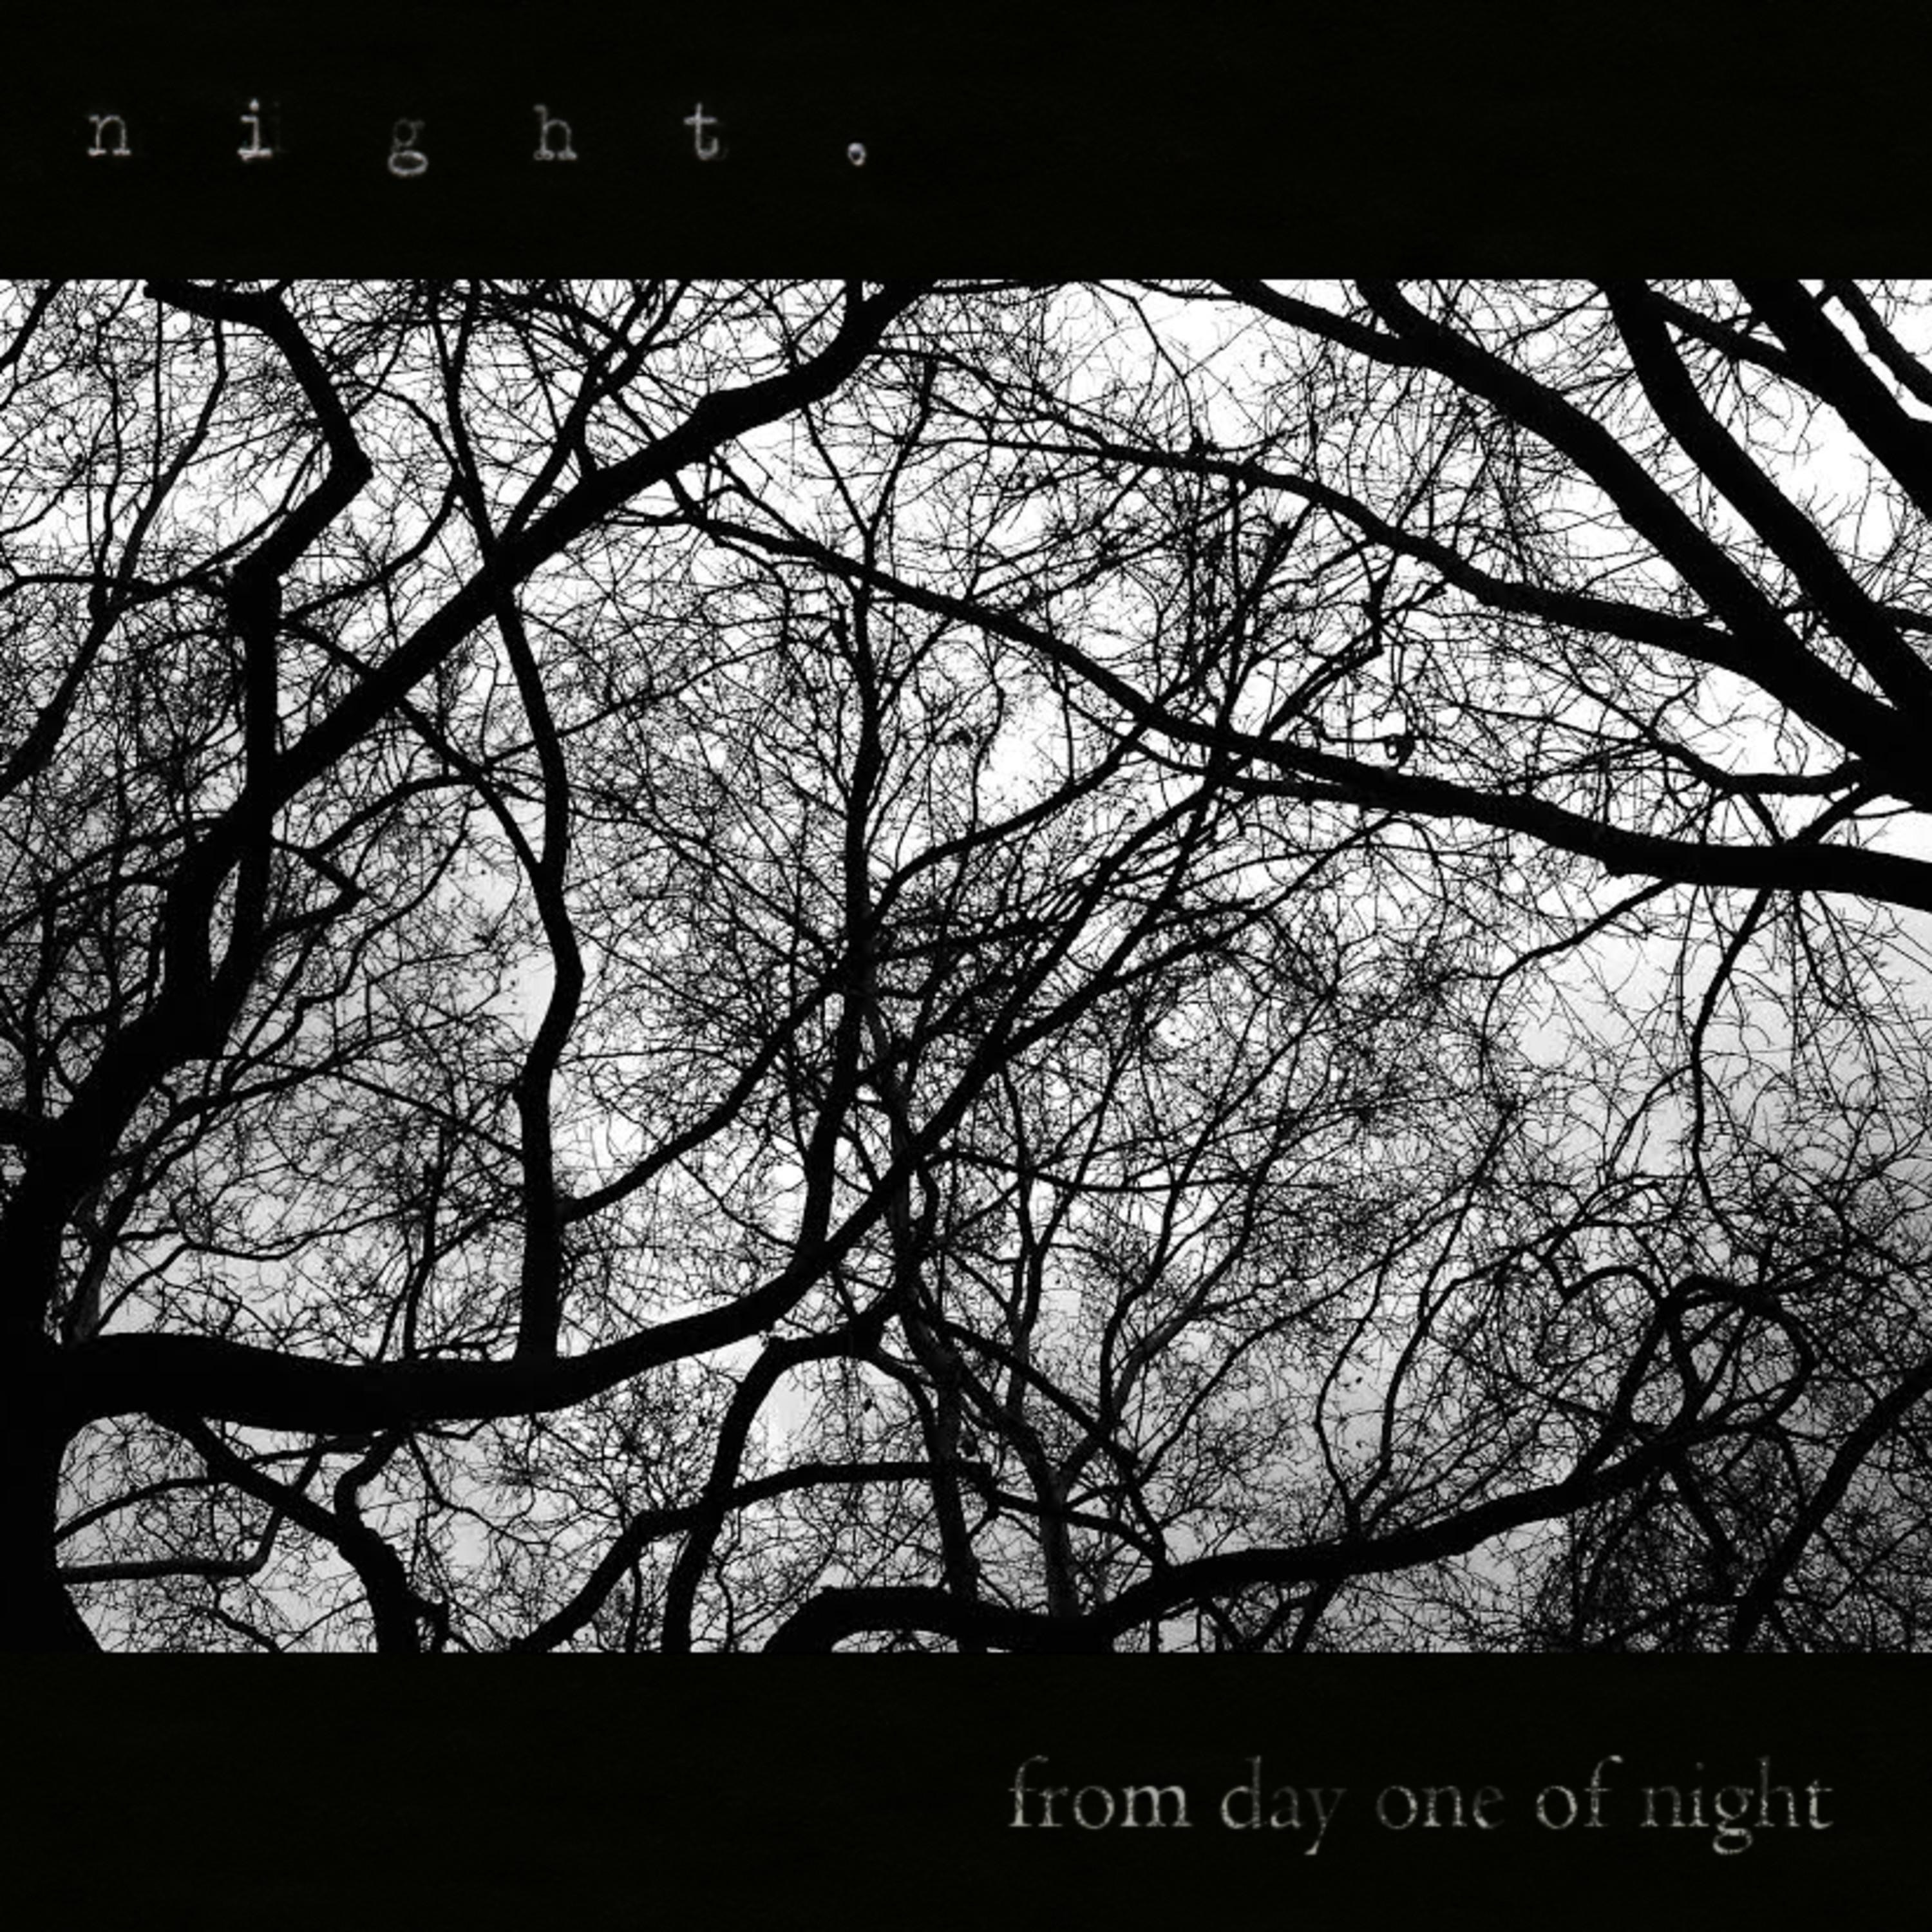 Selections from Day One of Night. - Single